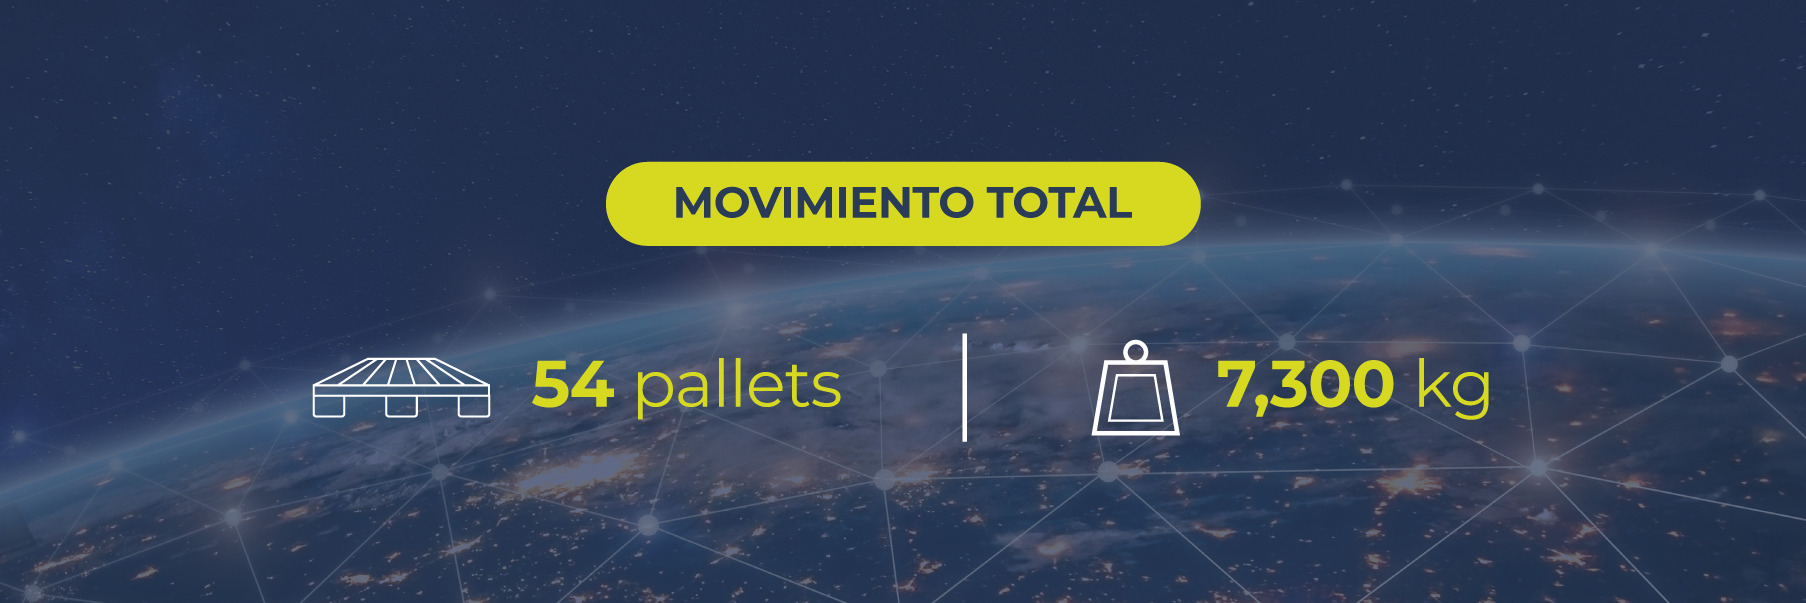 Movimiento total: 54 pallets!